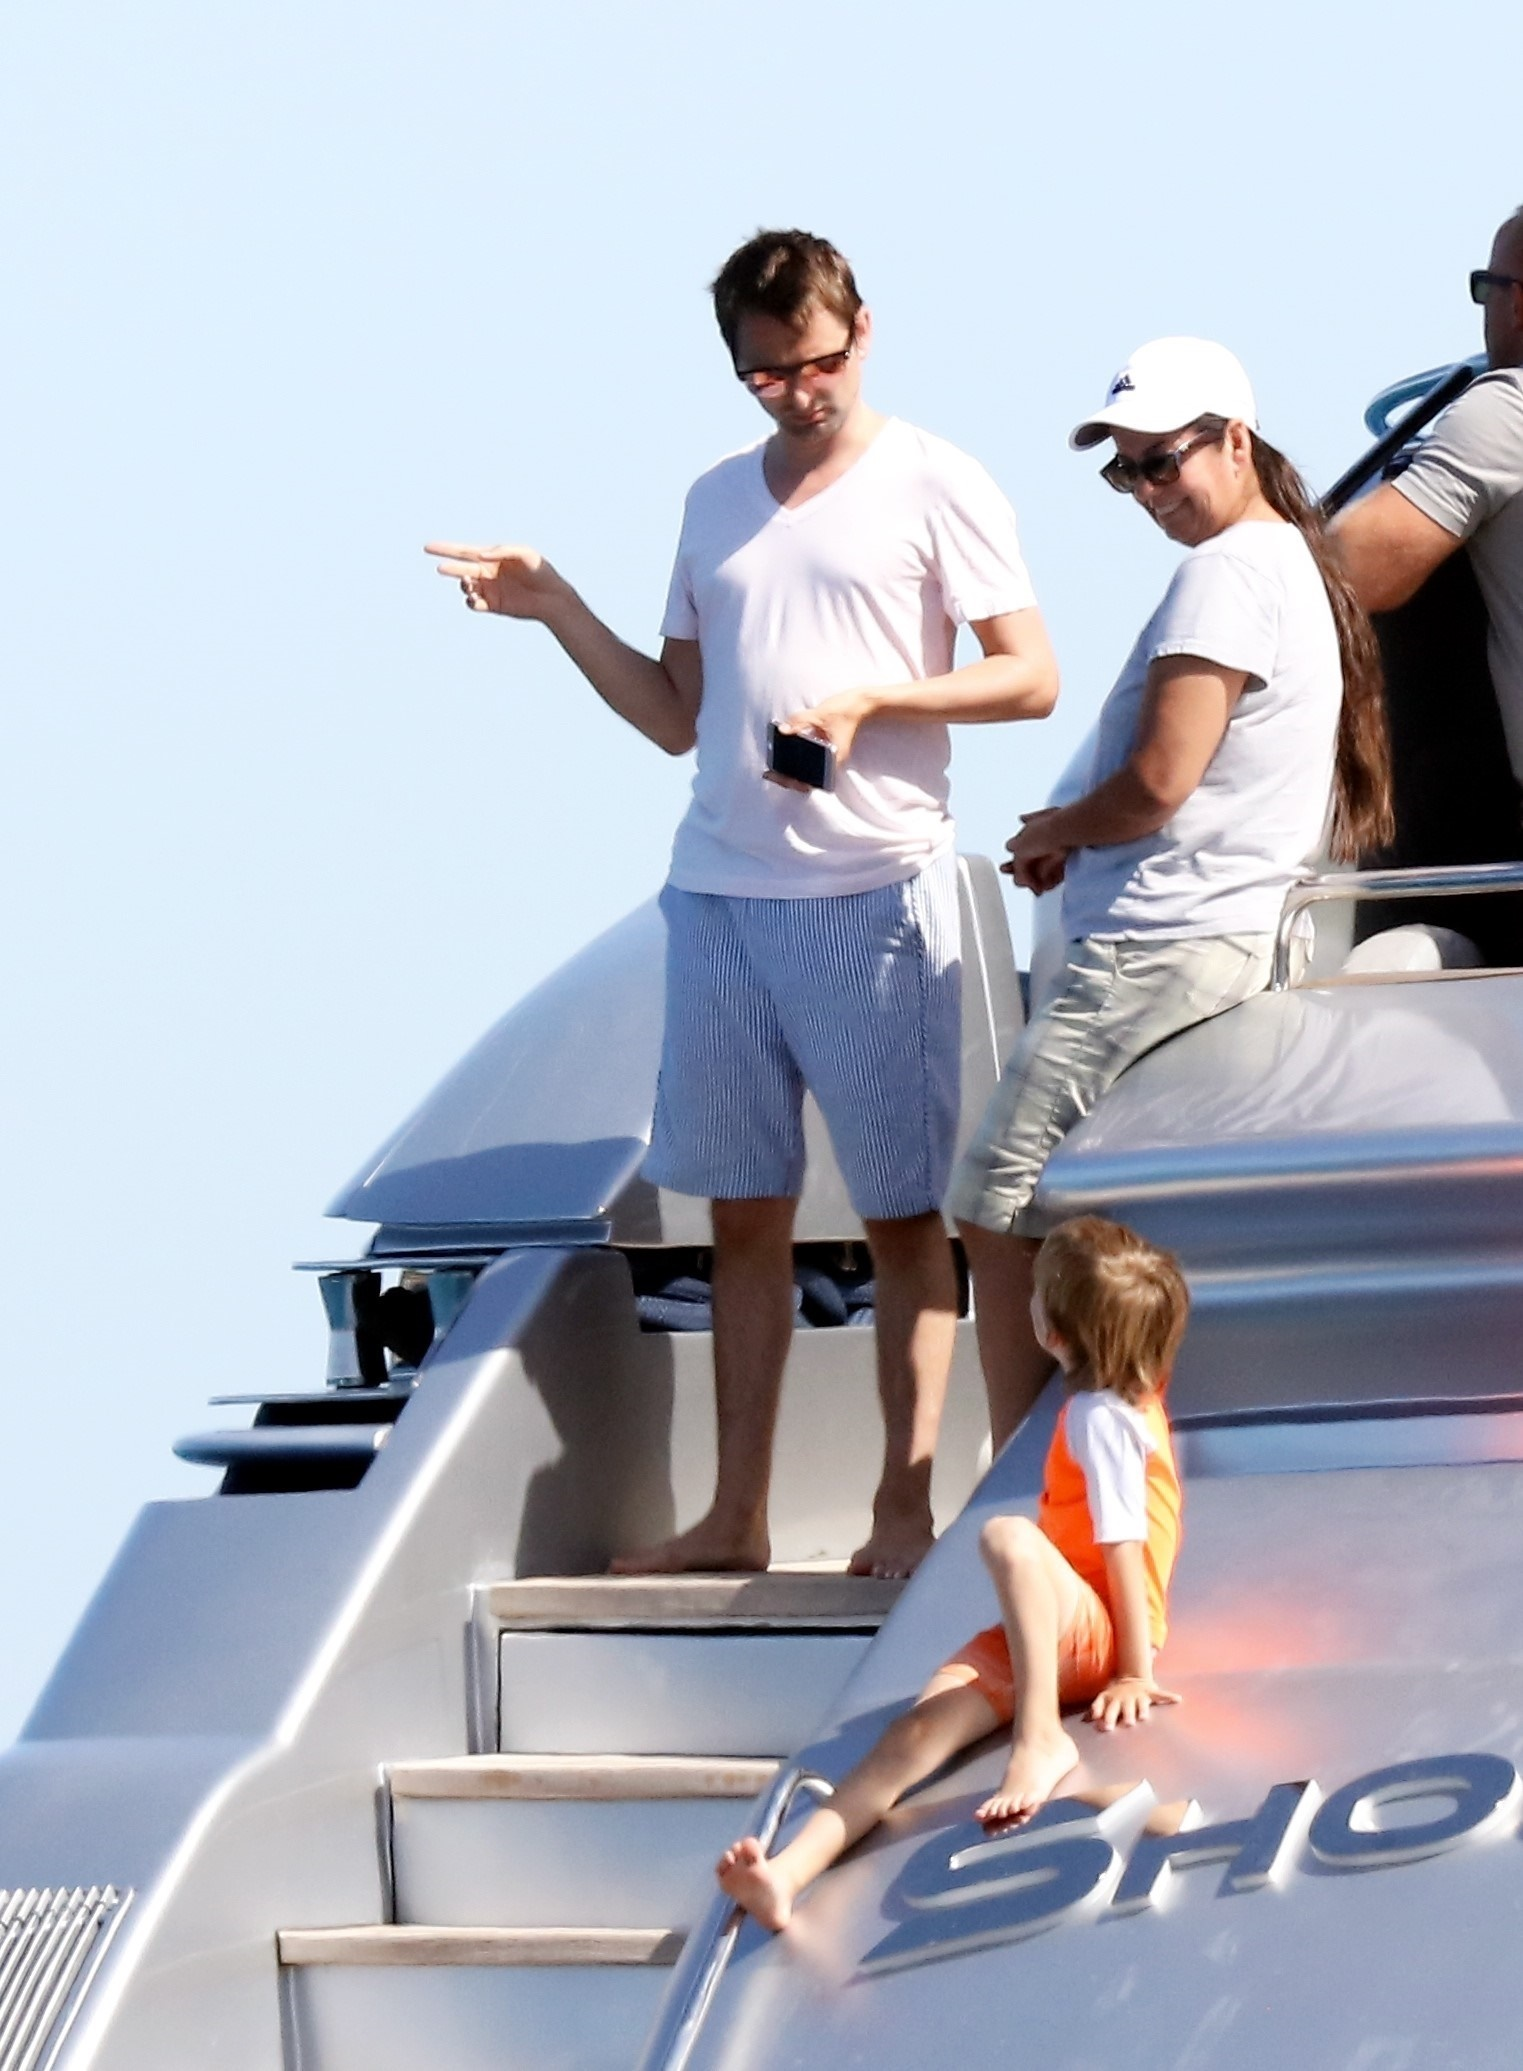 Musician Matthew Bellamy and his son with Kate Hudson, Bingham, were seen on a yacht in Saint Tropez, France, on July 5, 2017.